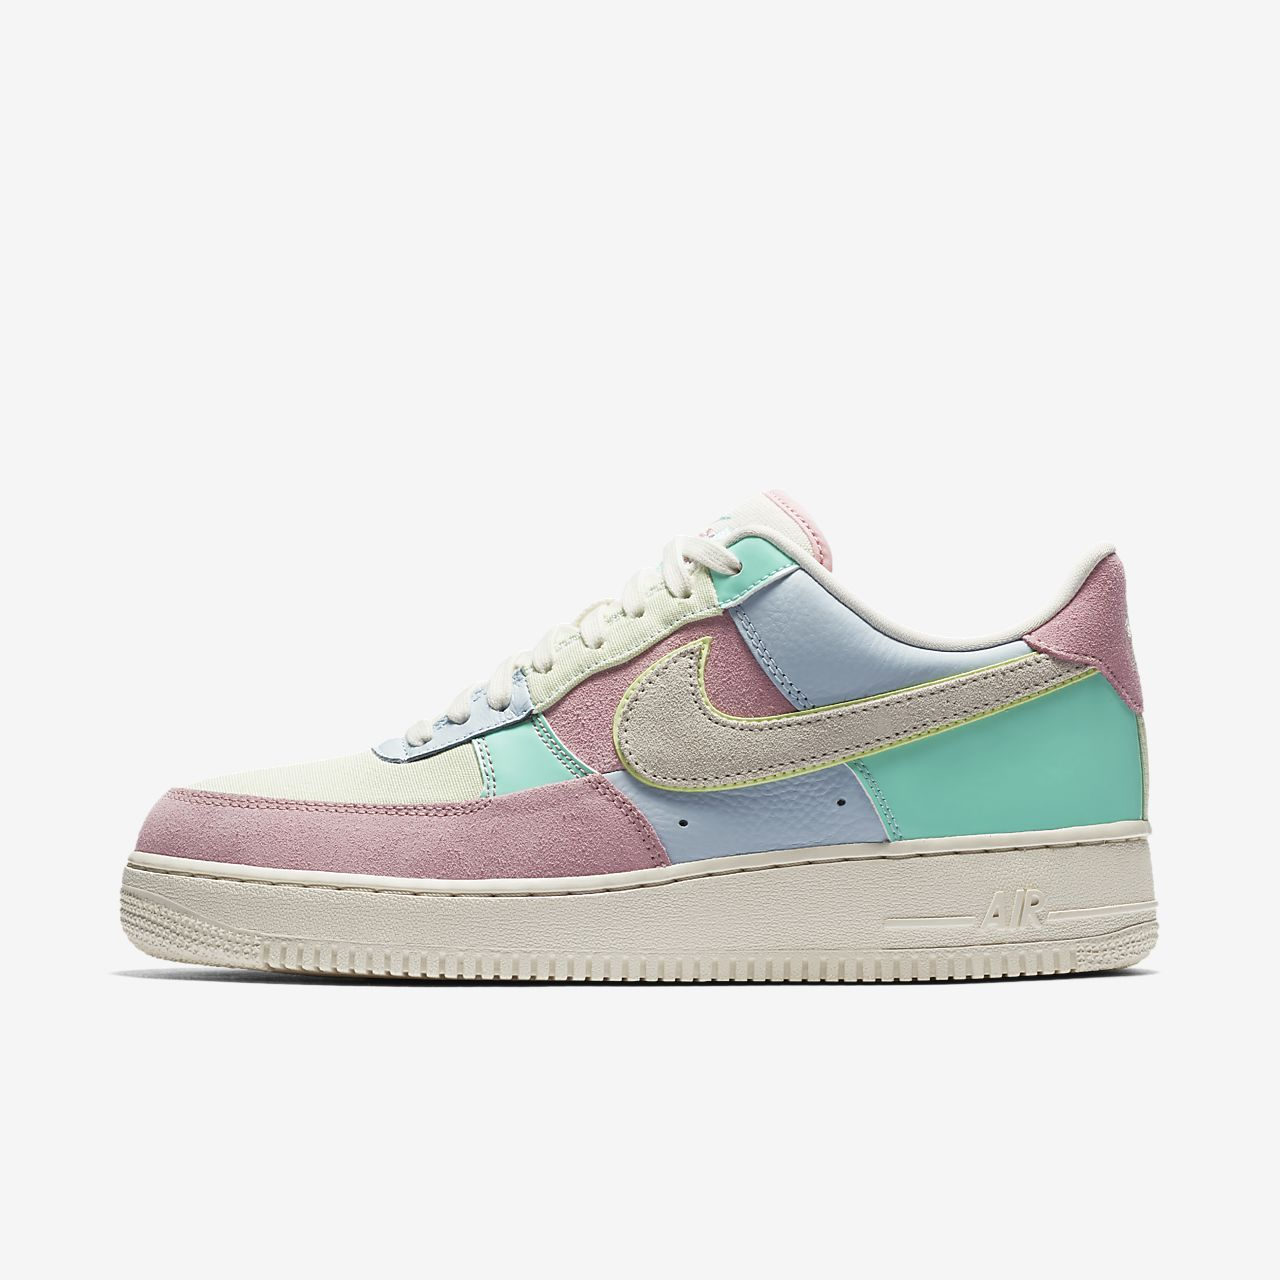 Nike Air Force 1 07 QS Mens Shoe